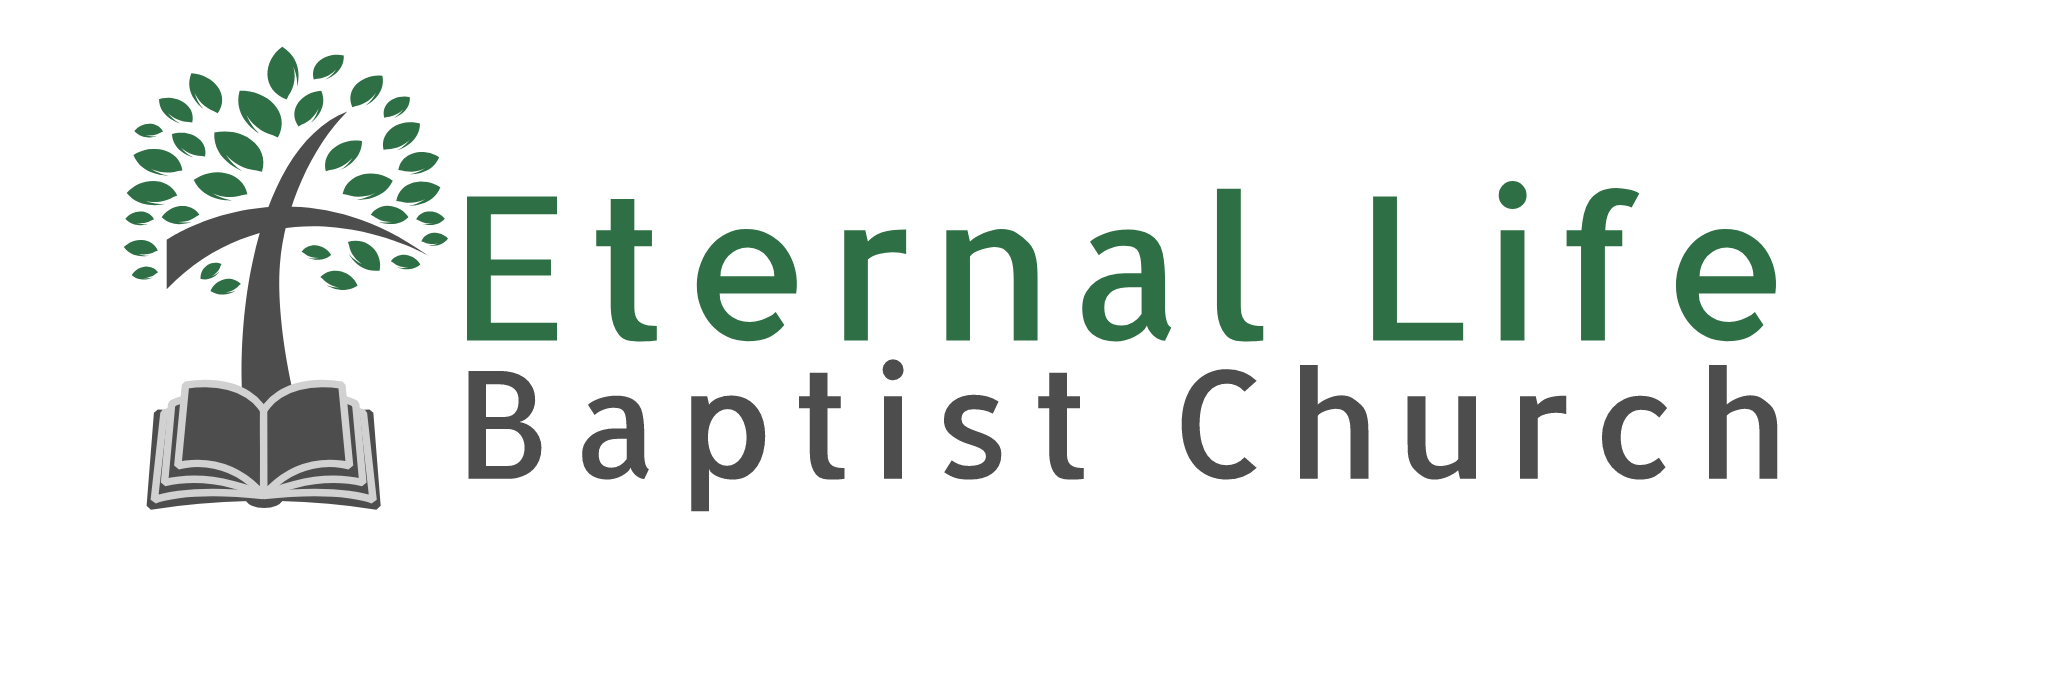 Eternal Life Baptist Church